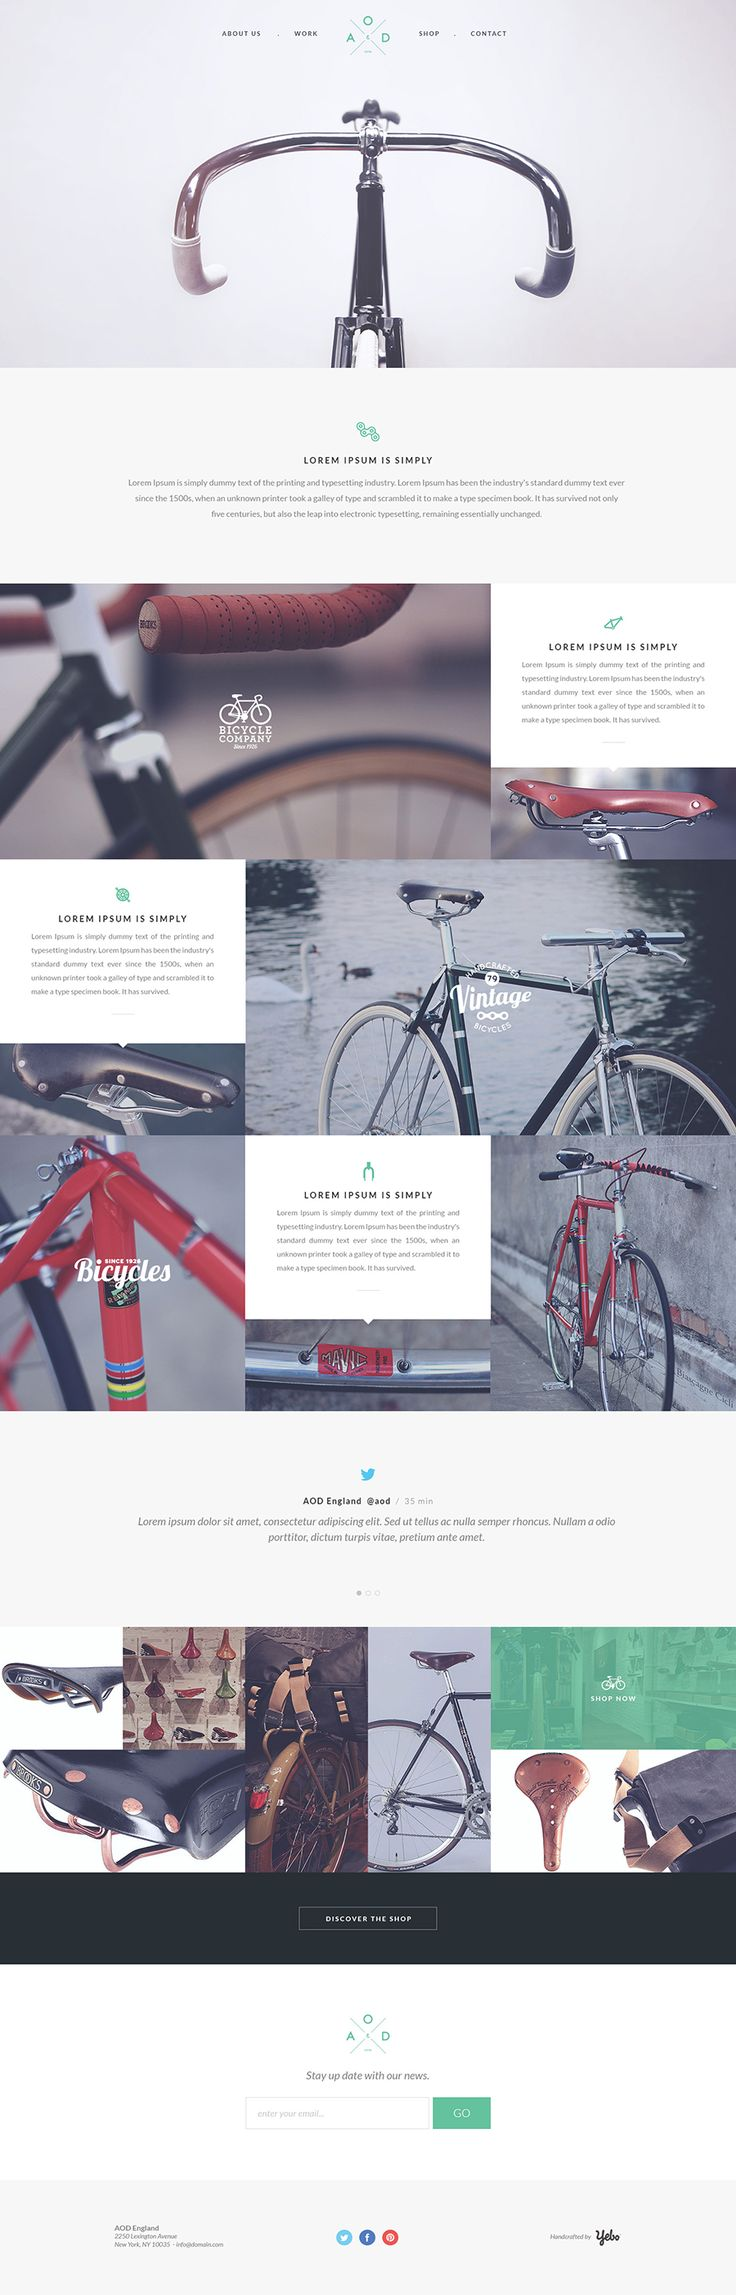 Bicycle is a flat one page layout designed to be responsive and fluid. The PSD template is fully layered and uses Google fonts. Download it for free!